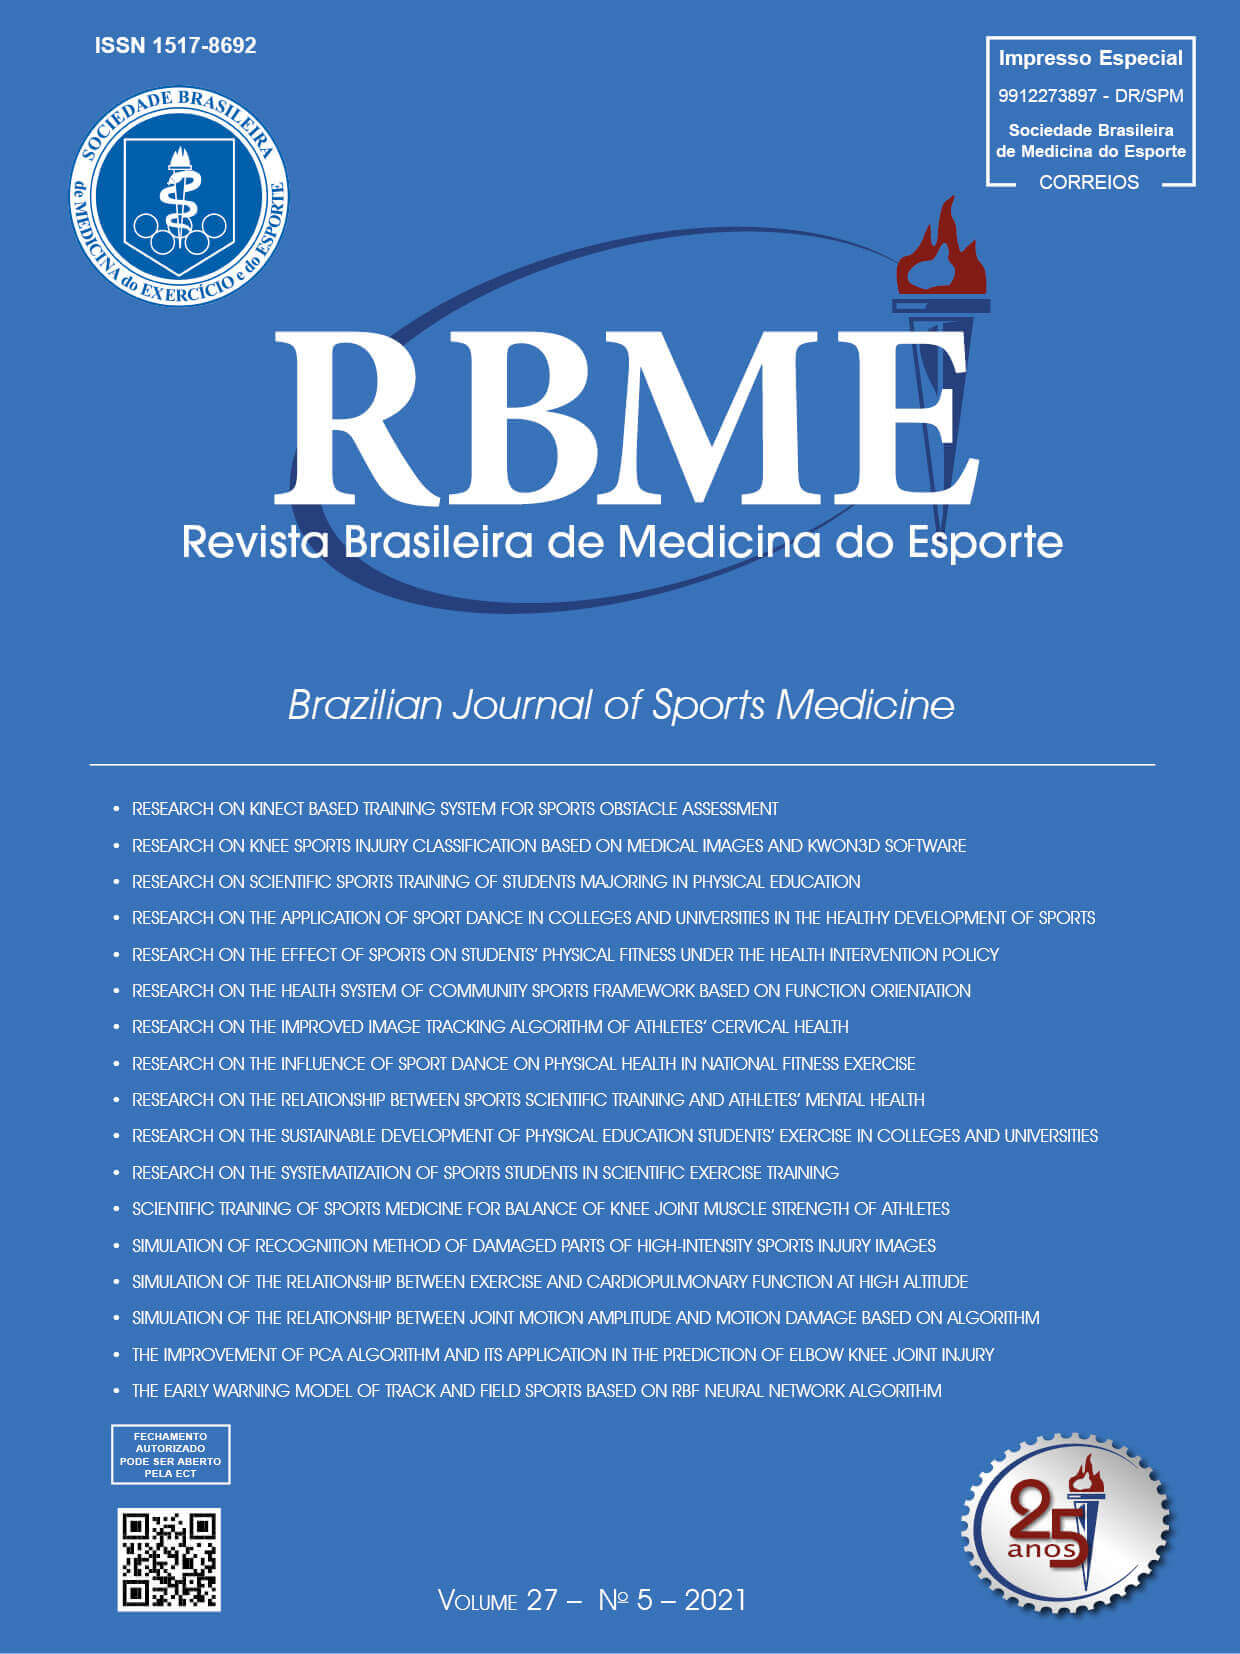 RBME Journal Cover